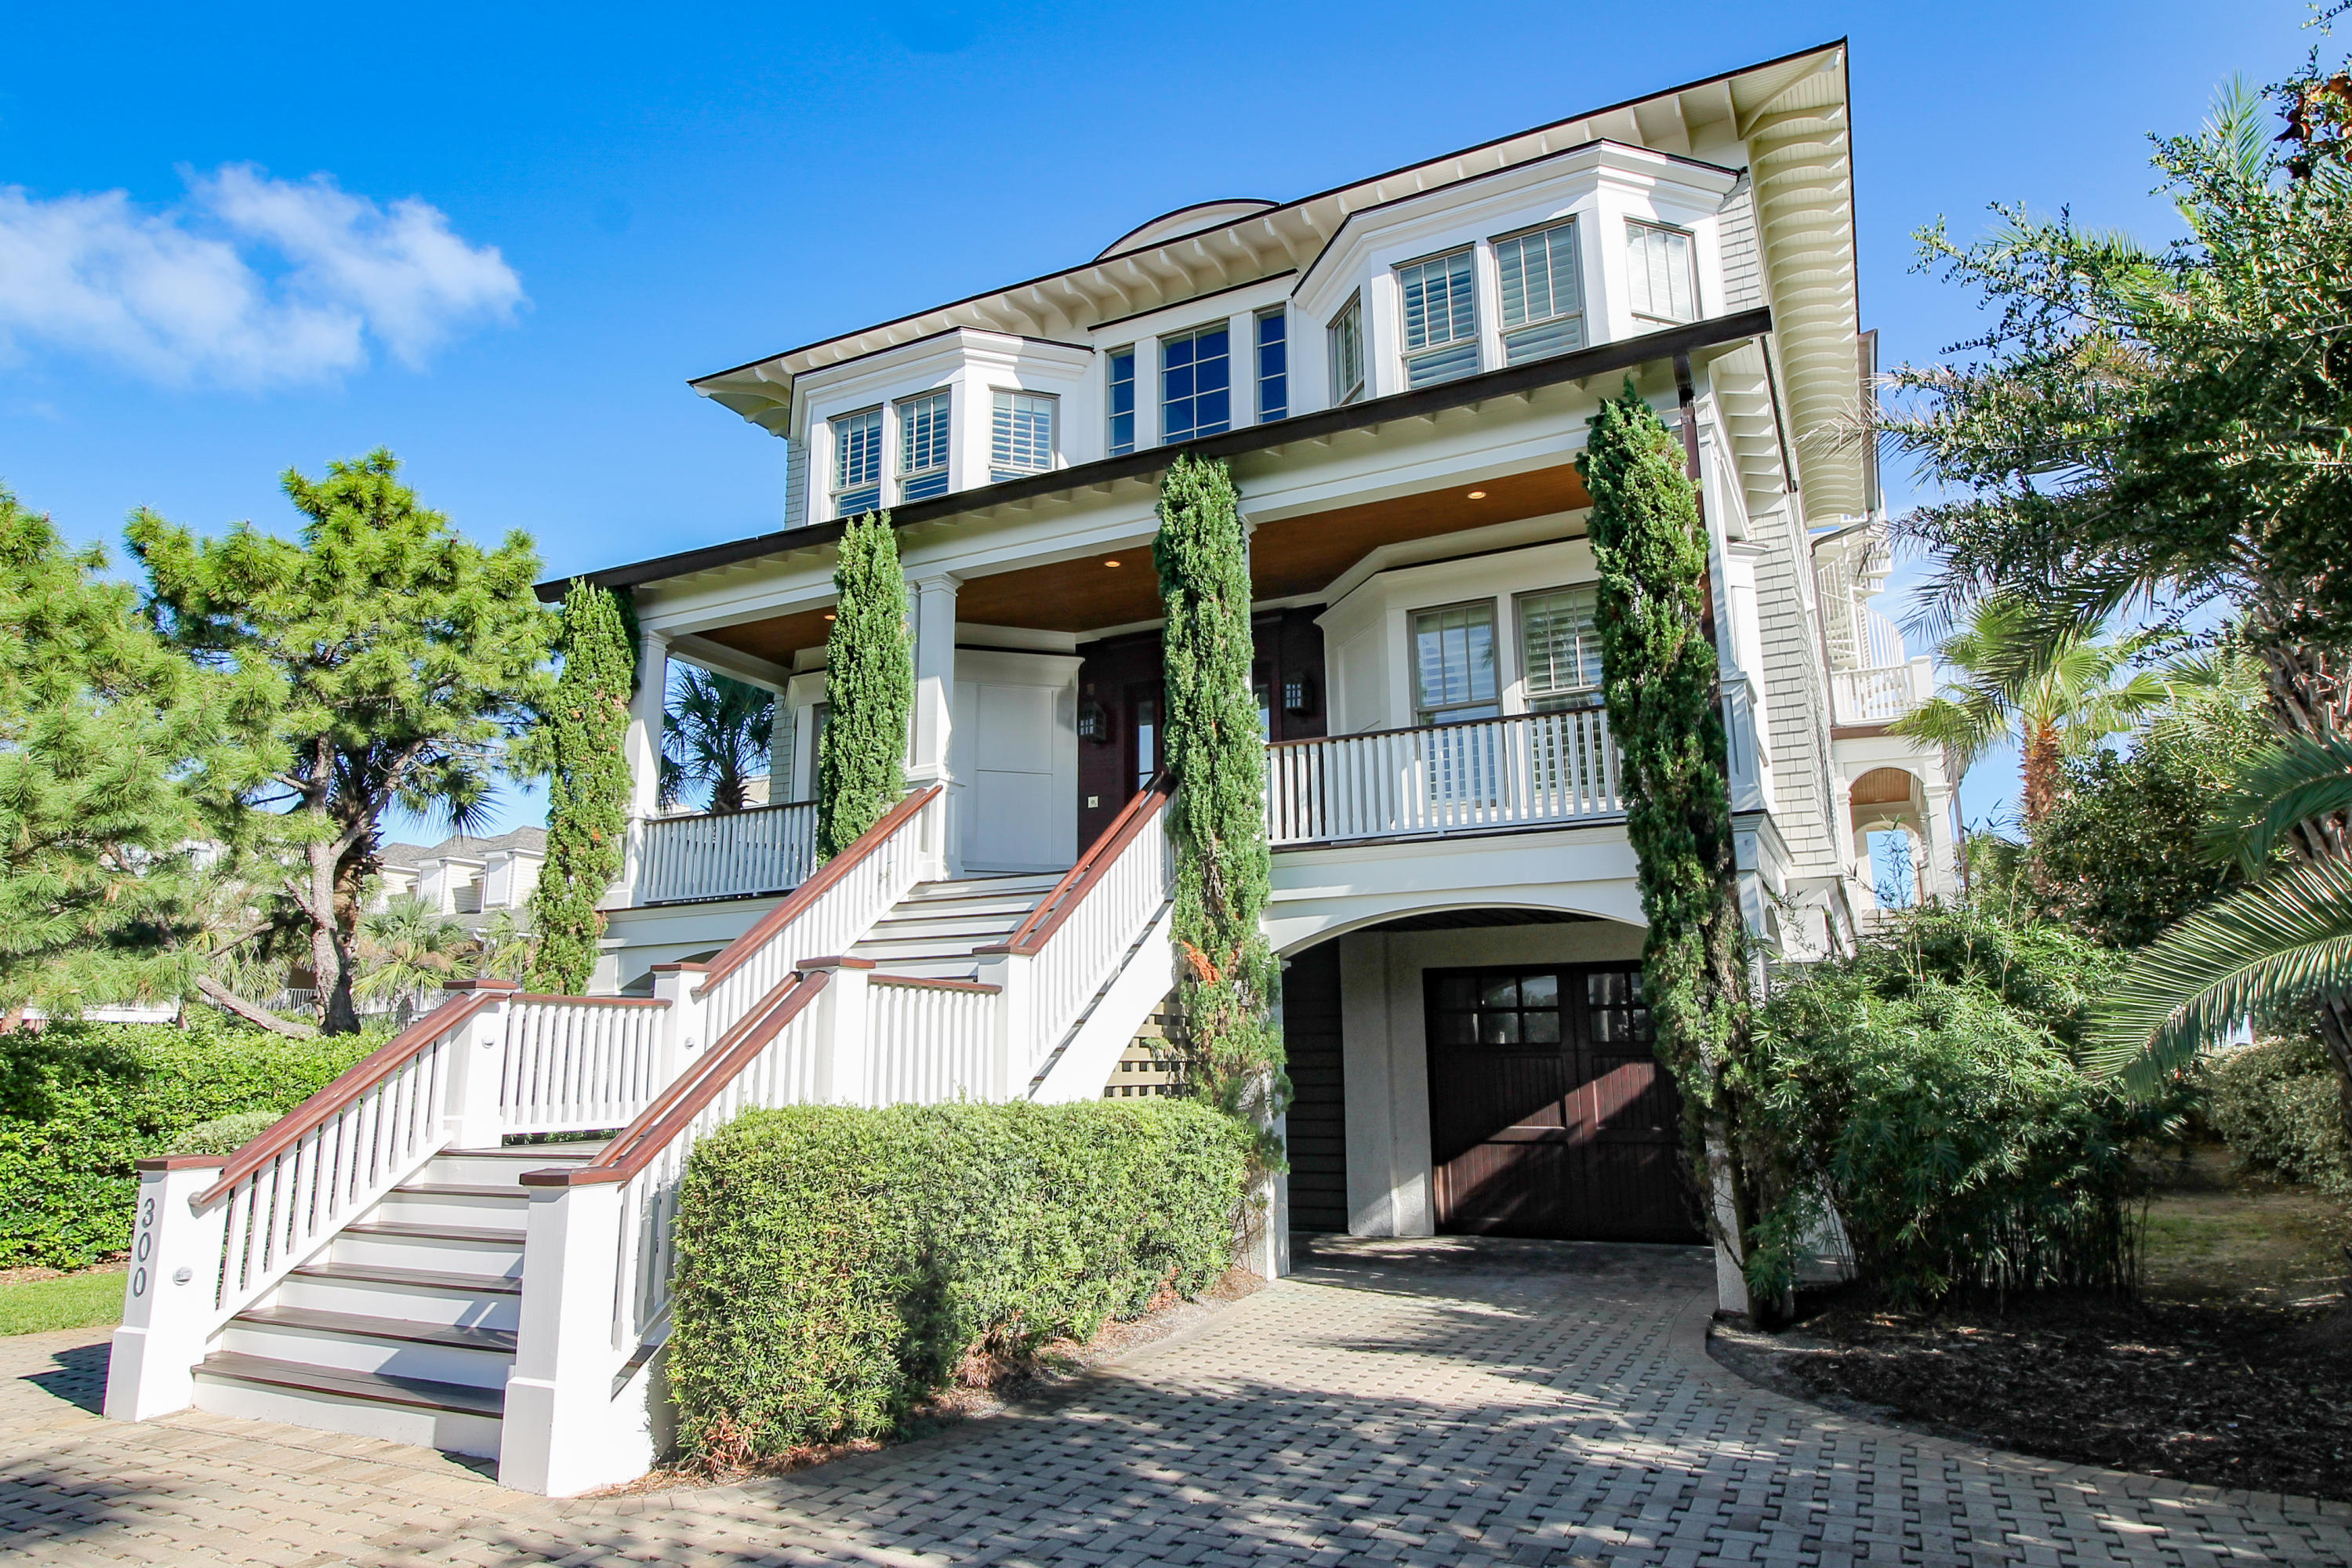 Ocean Boulevard Homes For Sale - 300 Ocean, Isle of Palms, SC - 4